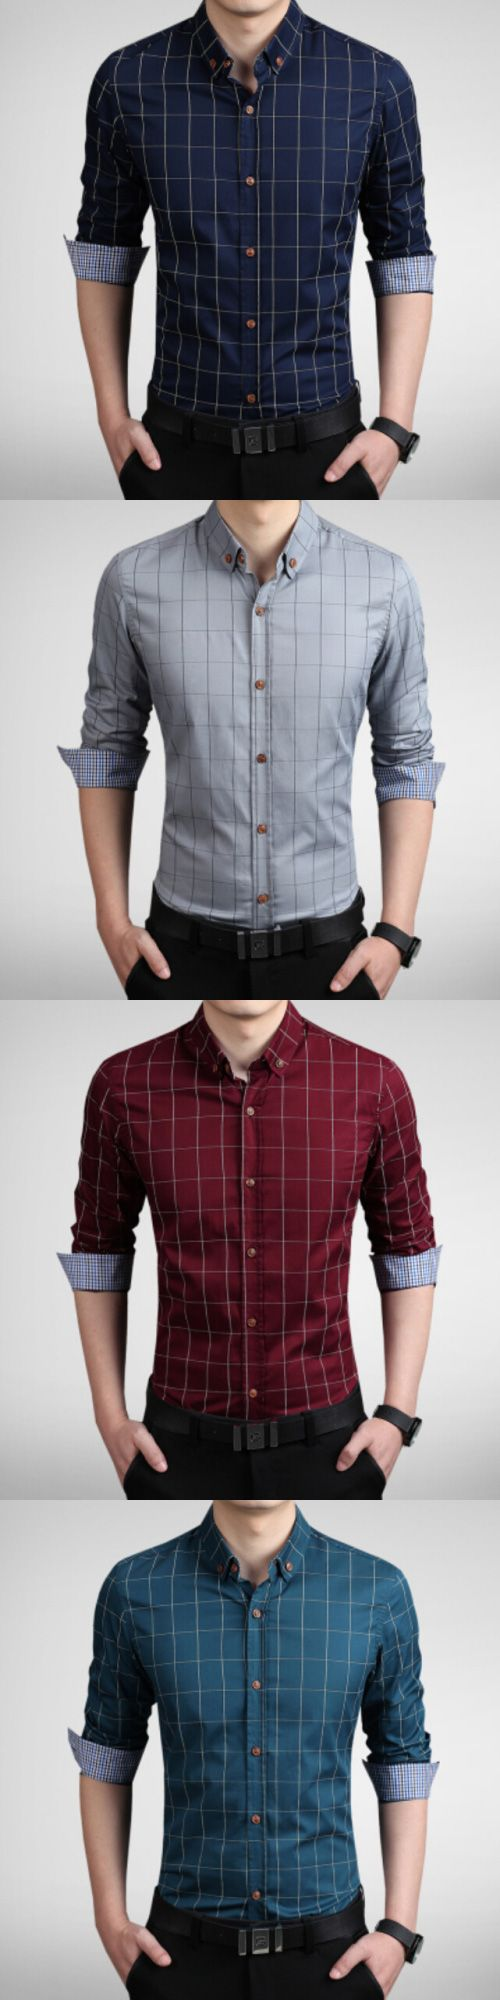 Men's Fashion Plaid Slim Fit Business Long Sleeved Shirt